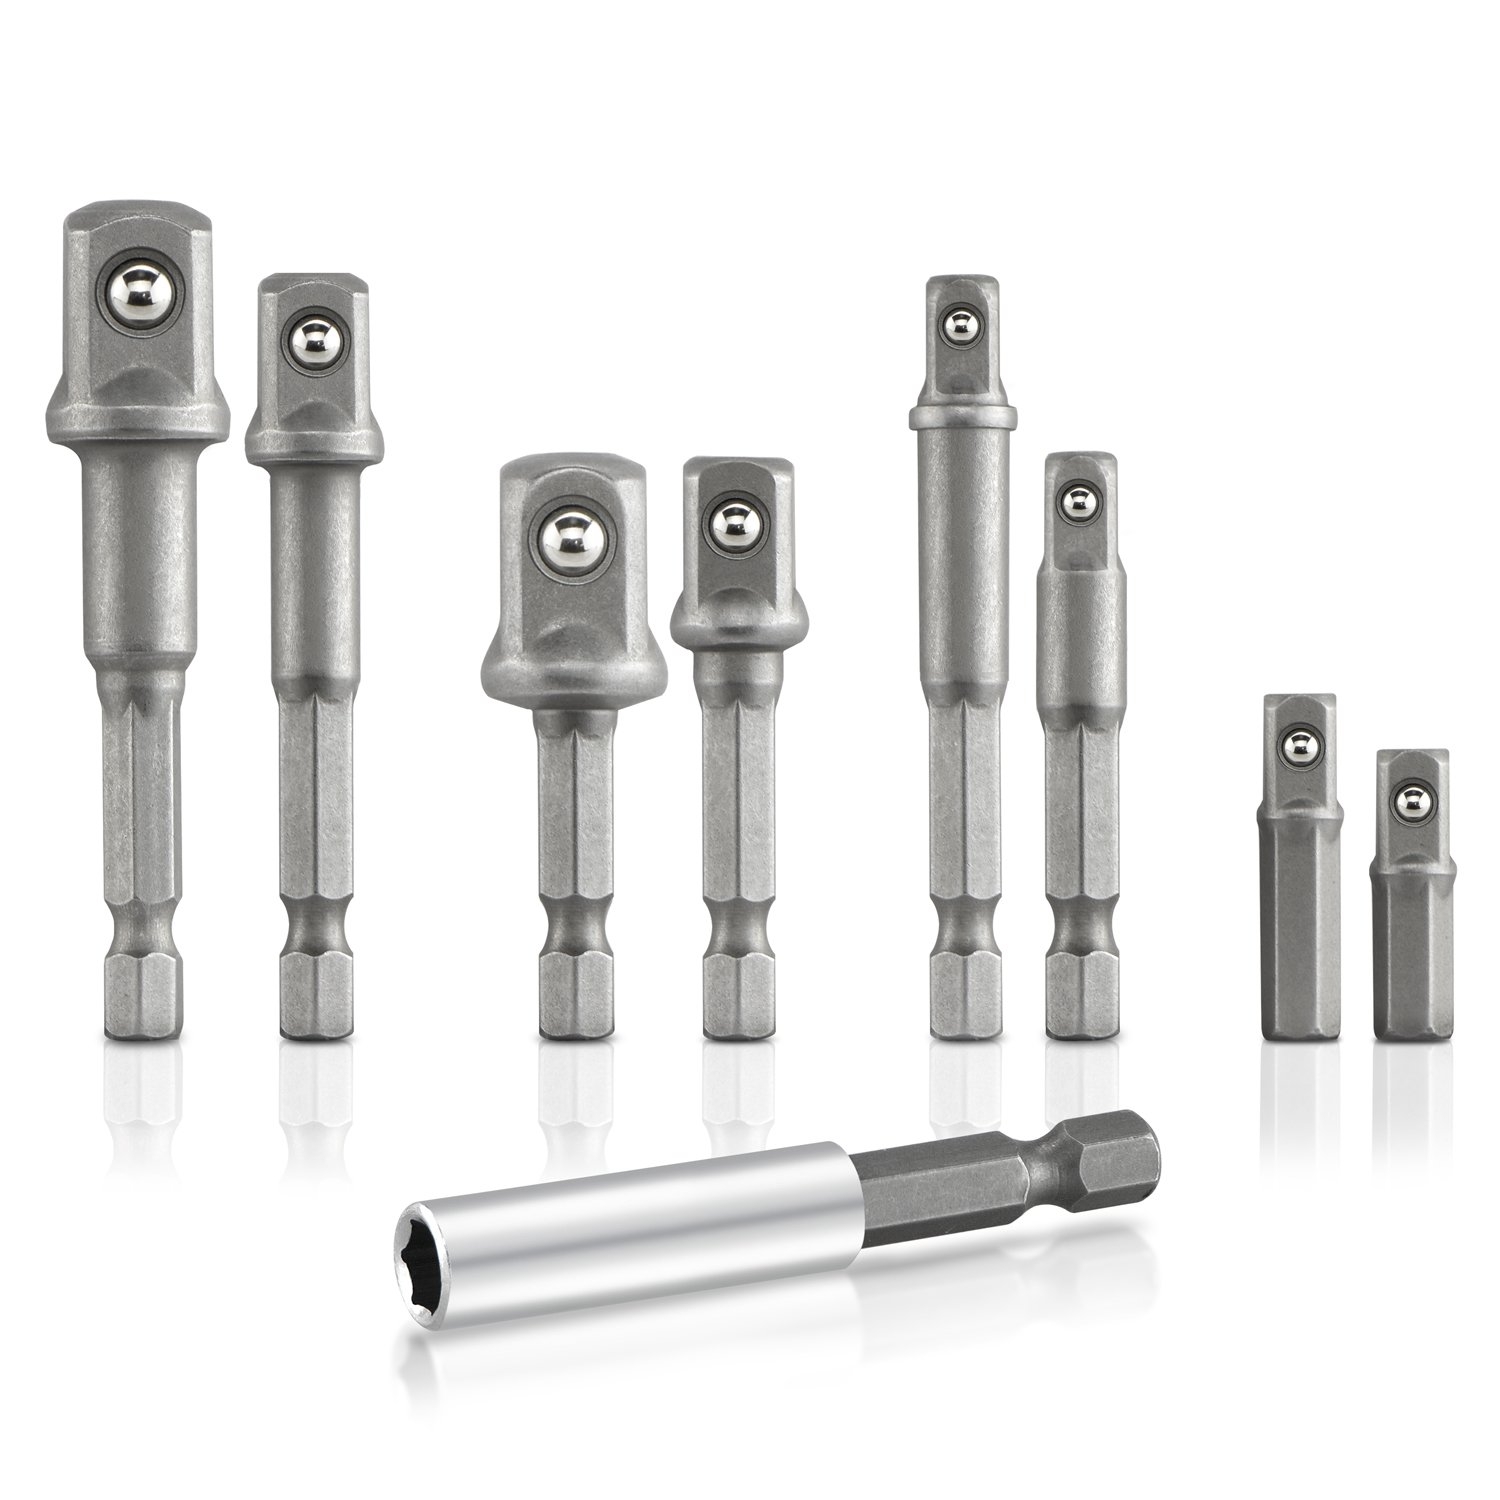 Hiltex 00257 Hex Shank to Square Drive Socket Adapter Bit Bar Set, 9 Pieces | CR-V 1/4, 3/8, 1/2-inch Drive